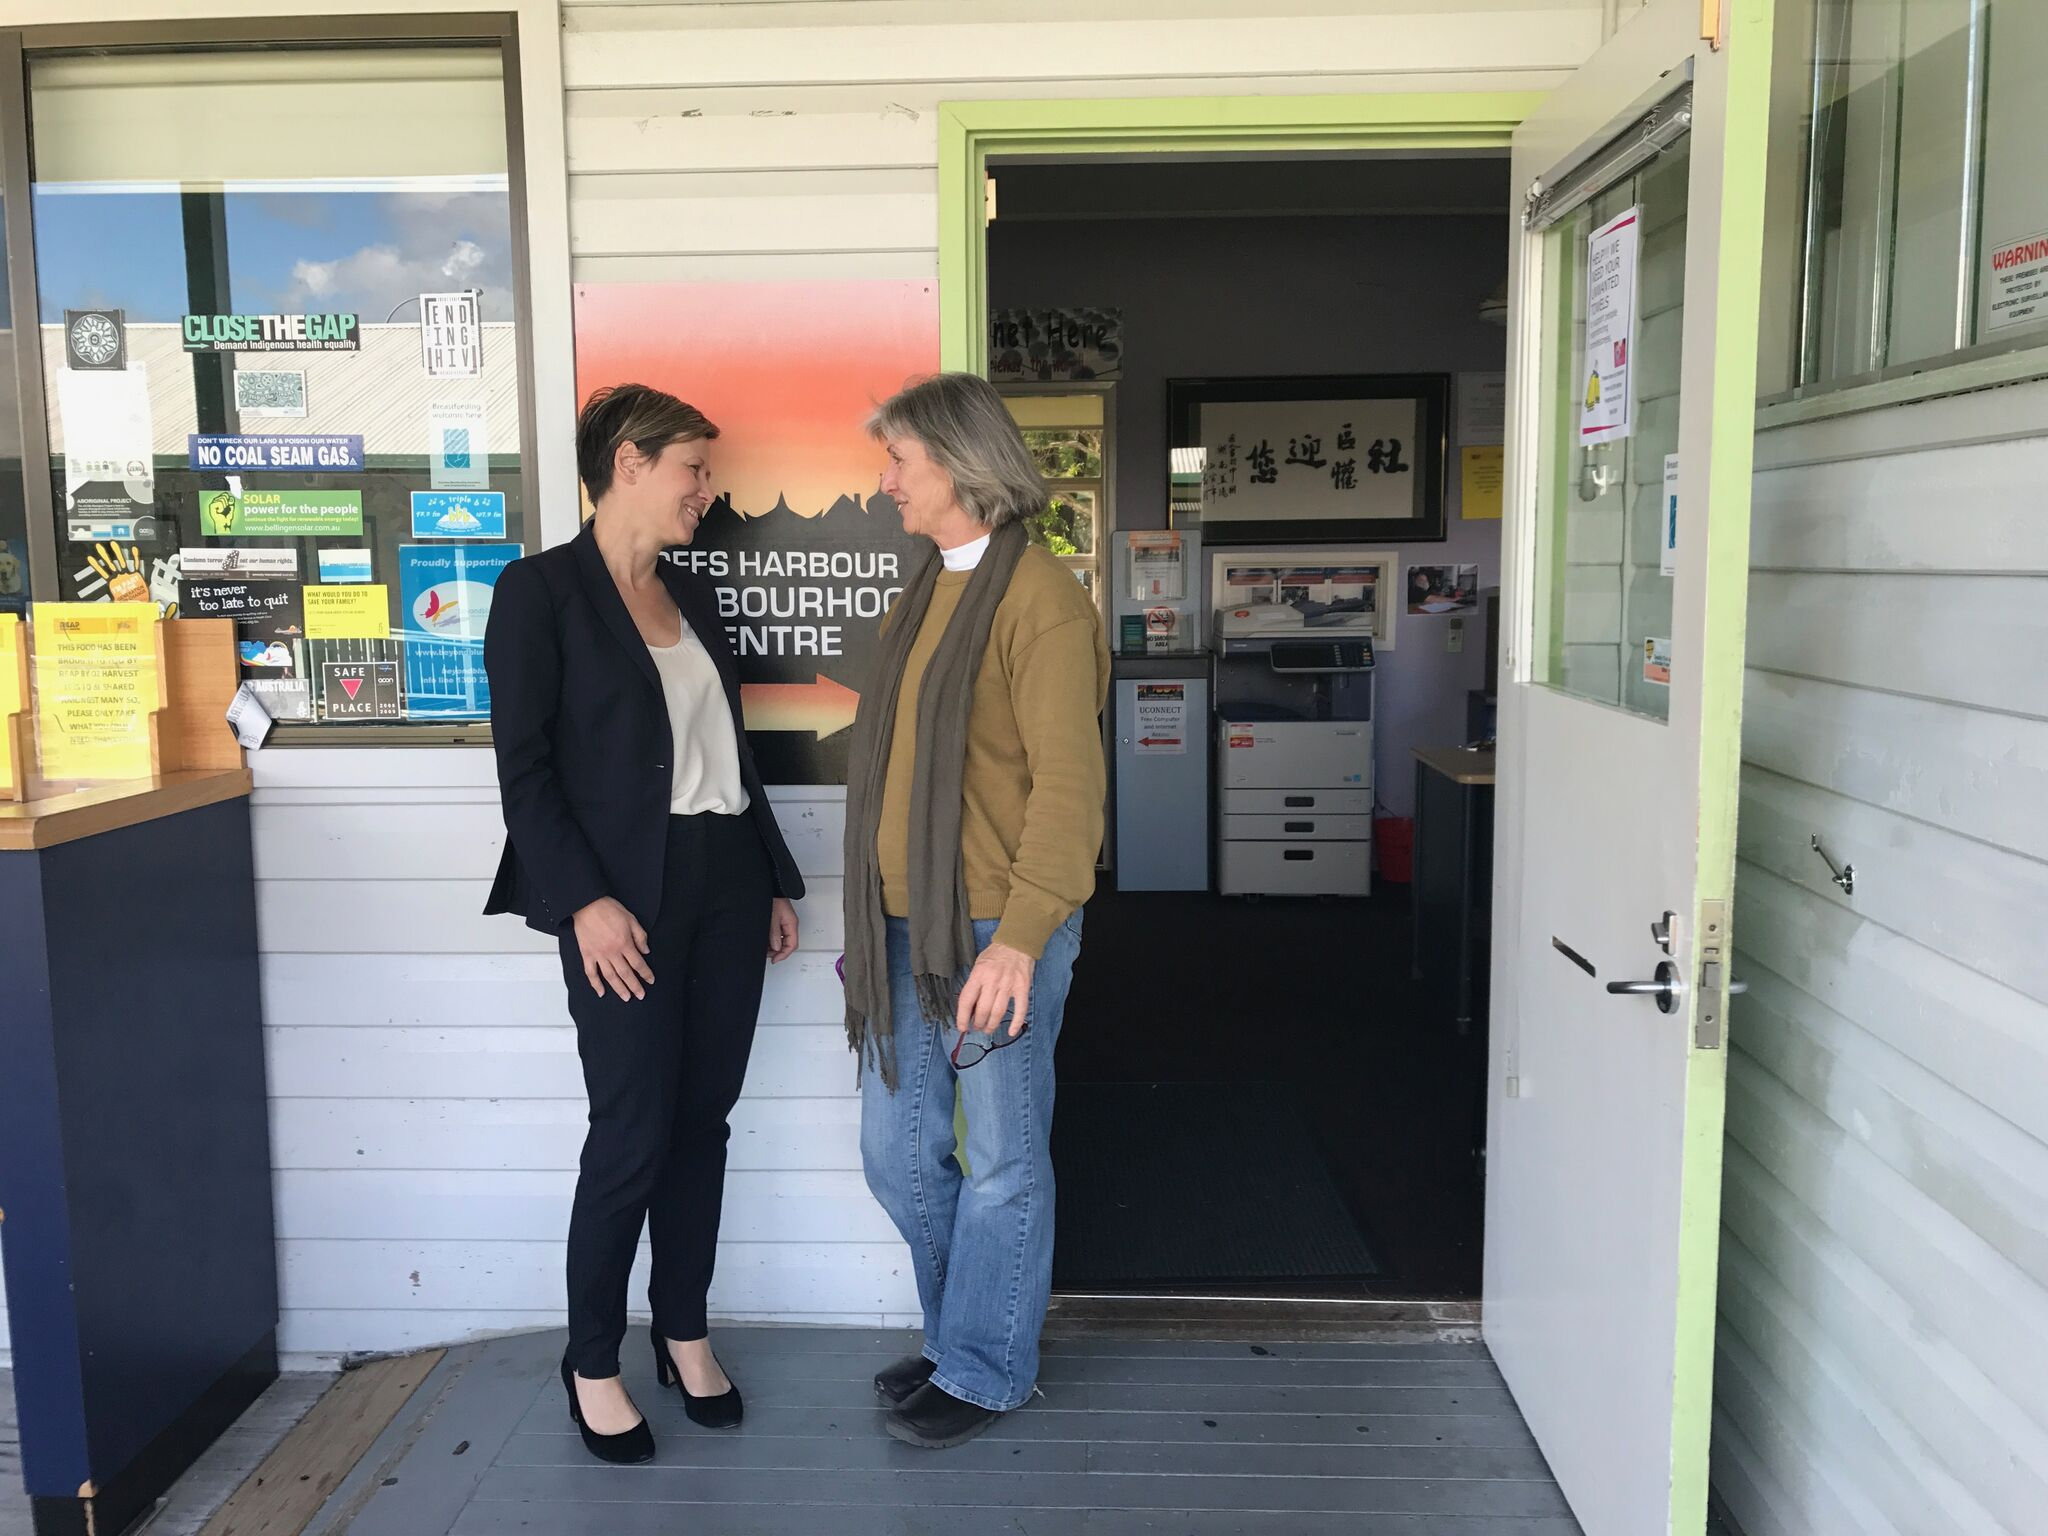 20170602_Jenny_and_Gai_Newmann_Manager_of_Centre_Coffs_Harbour_Neighbourhood_Centre_visit_Coffs_Harbour.jpeg